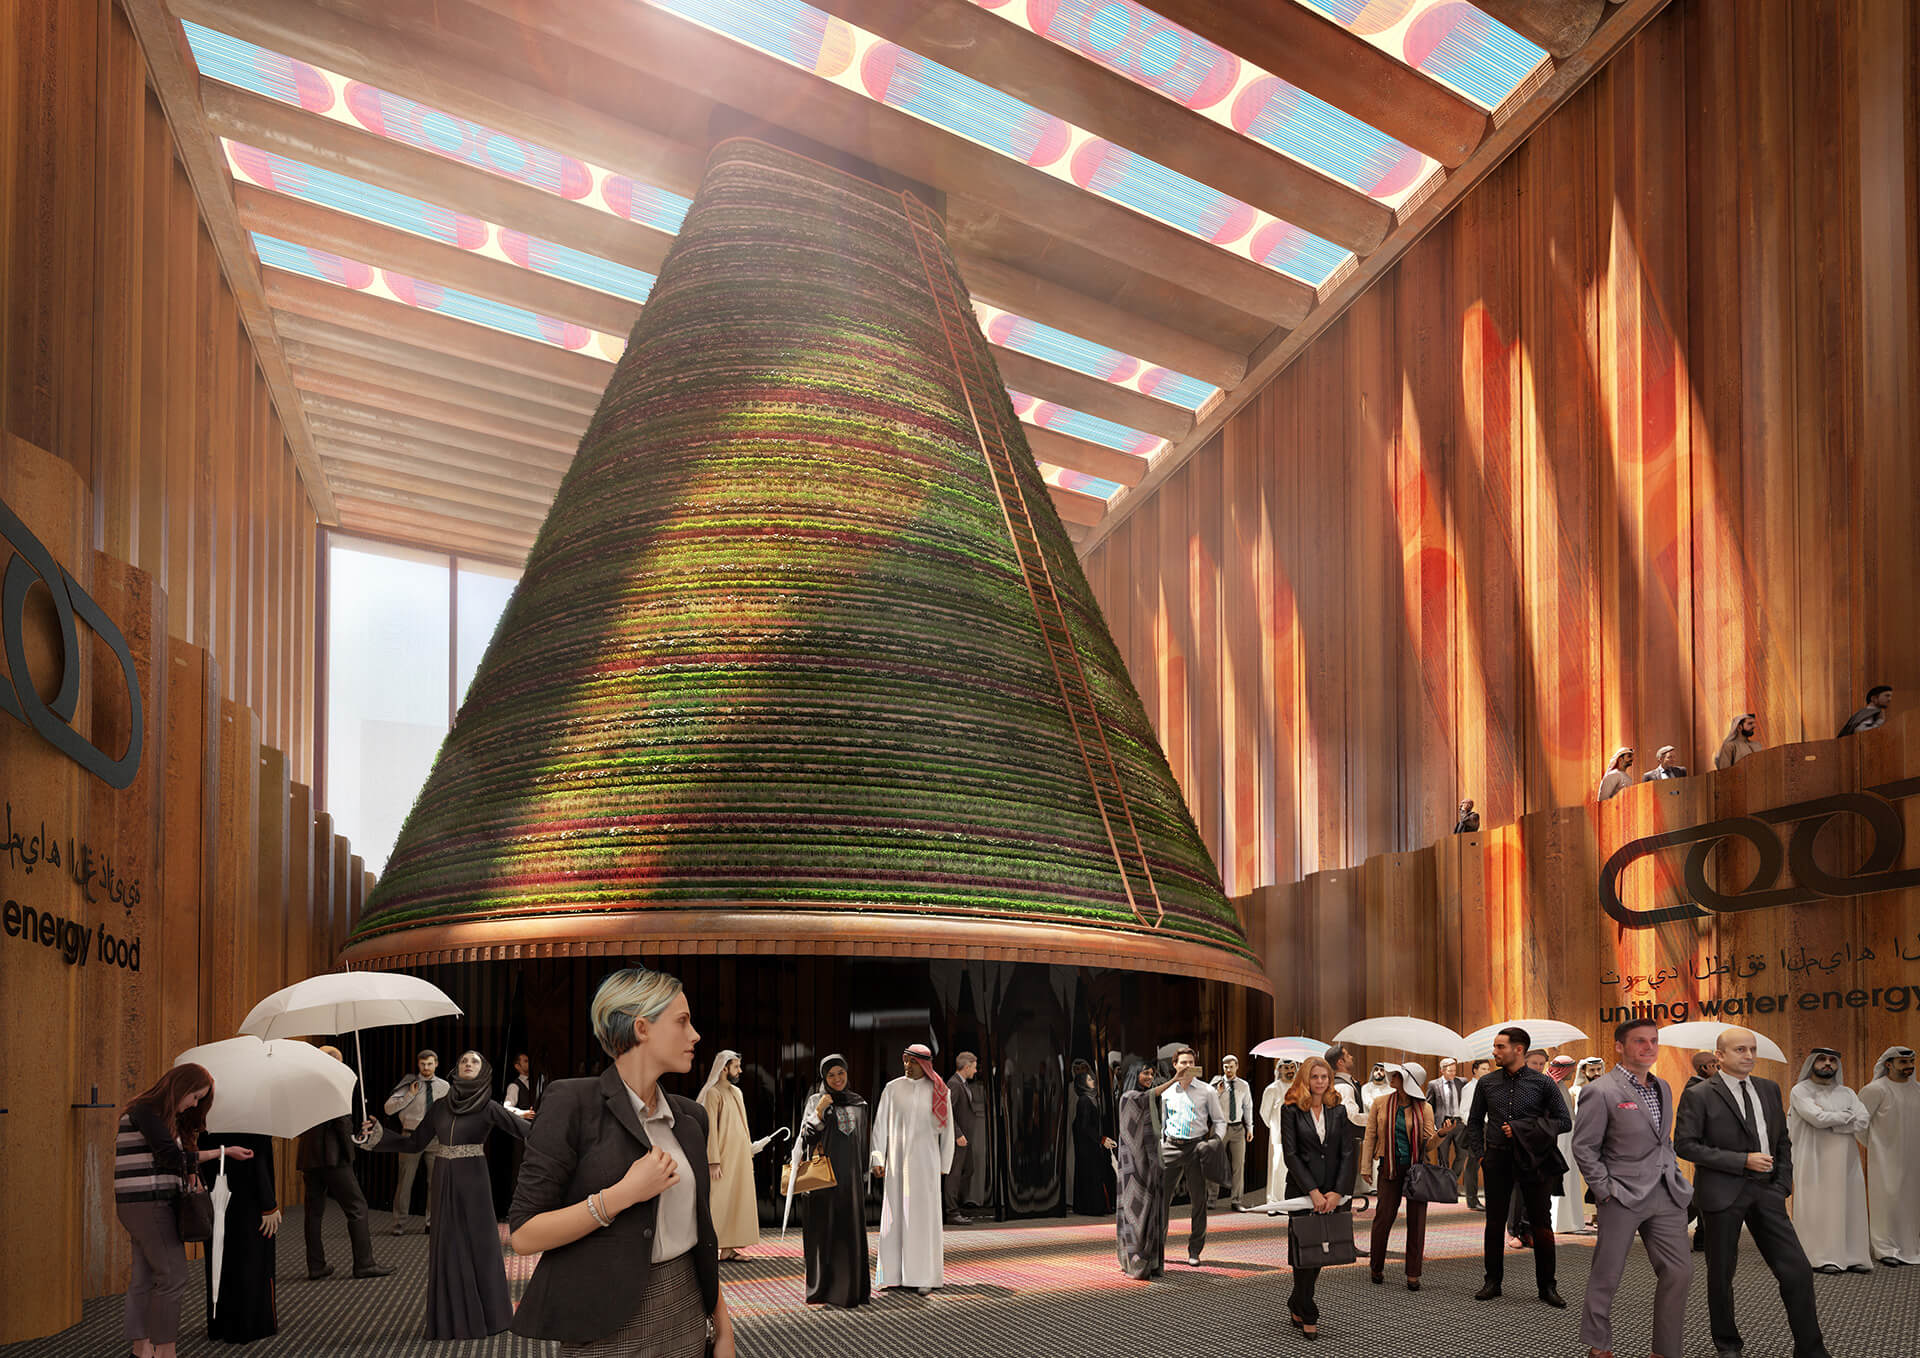 Solar Roof for World Expo Dubai 2021| Made in the Netherlands: Curated by Wendy Plomp | STIRworld